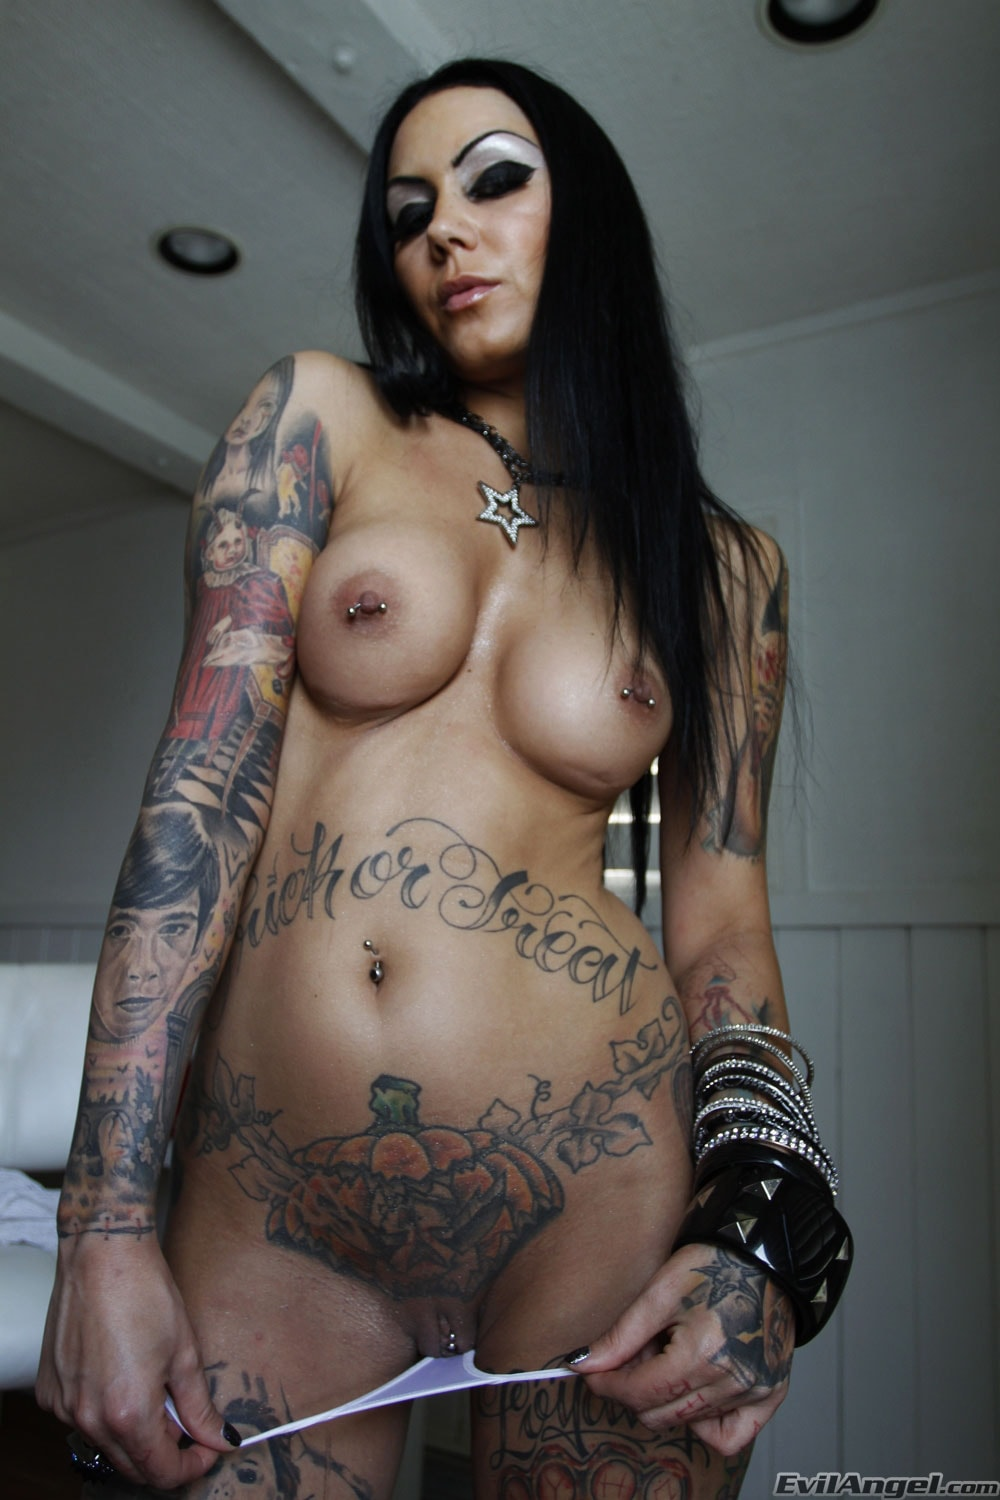 Evil Angel 'Stretch Class 4' starring Bella DellaMorte (Photo 30)